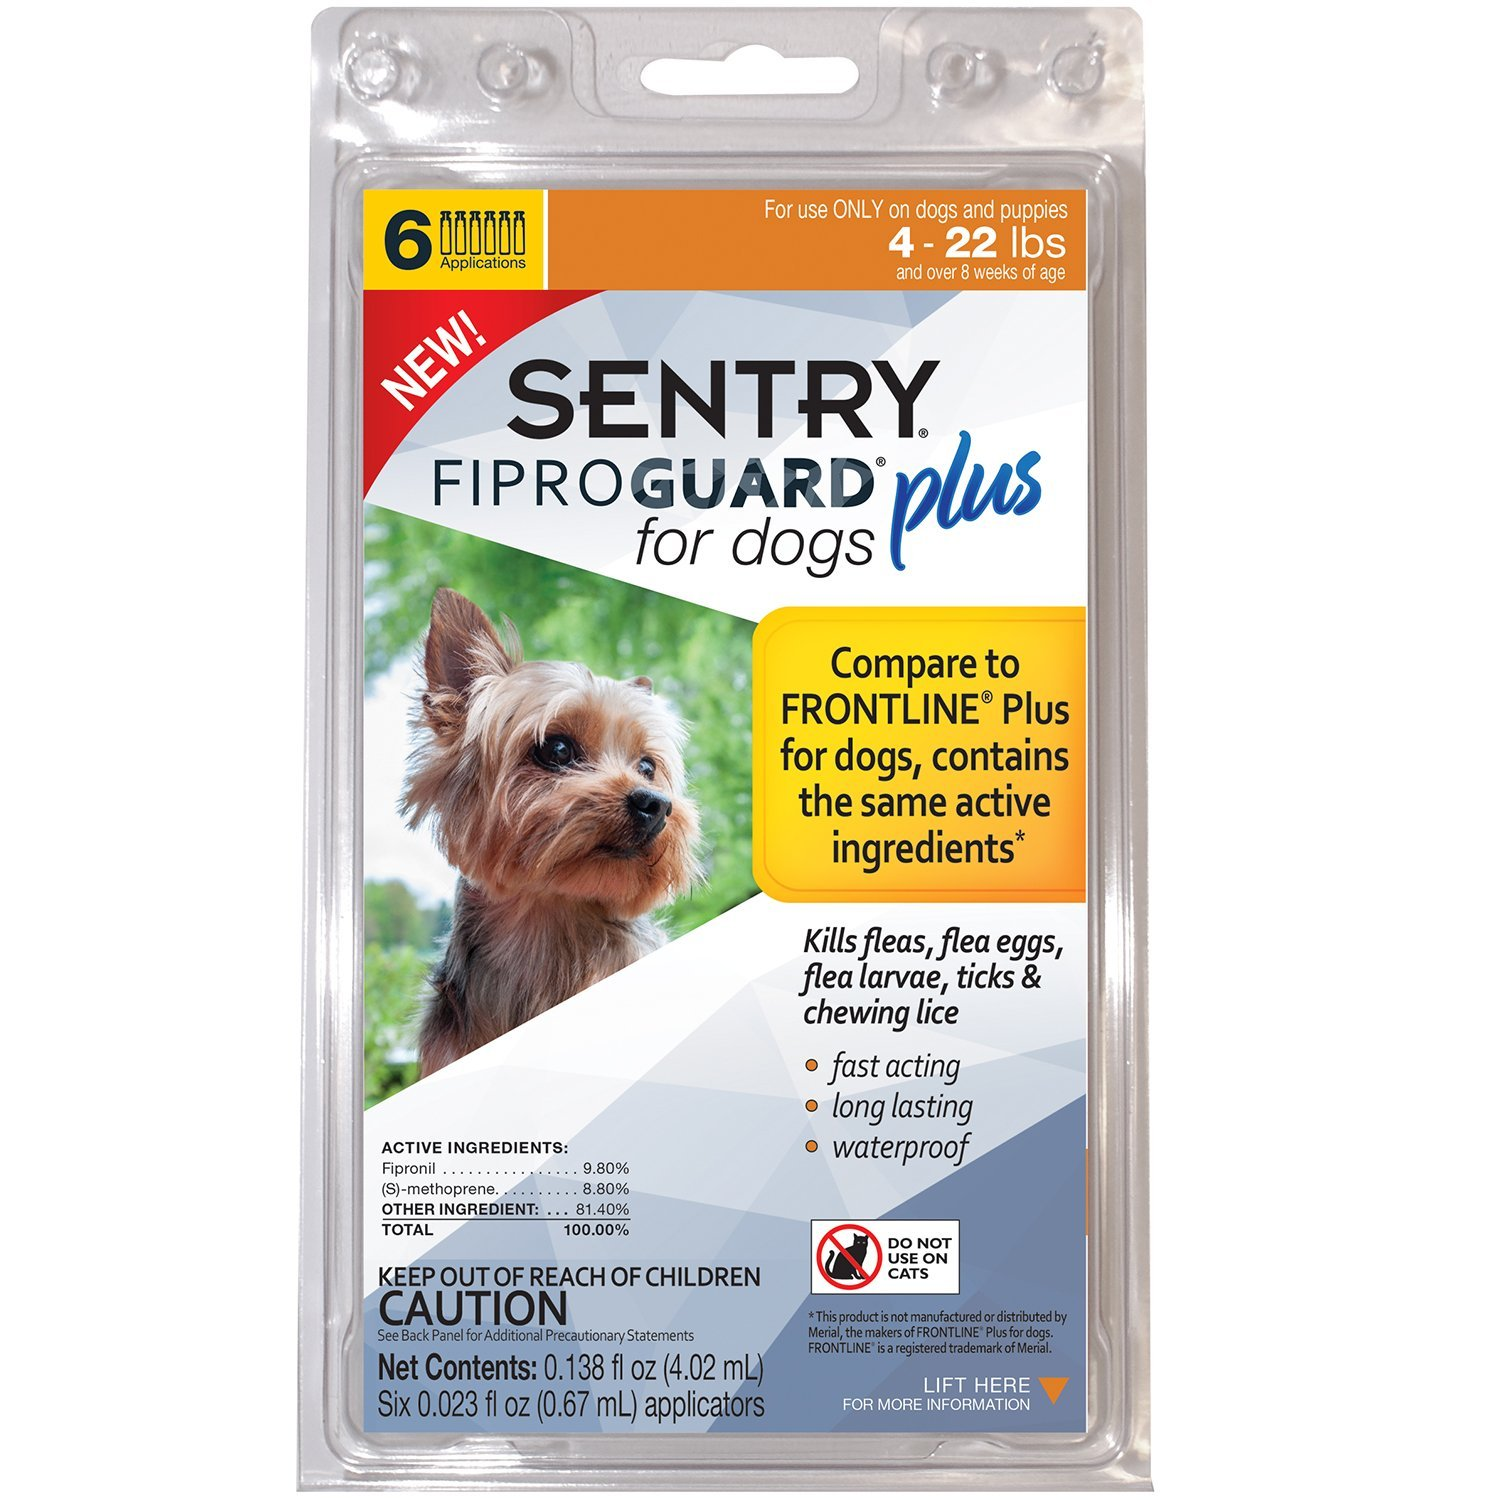 Sentry FIPROGUARD PLUS for Dogs & Puppies 4-22 lbs. Topical Flea & Tick Treatment, 6 Month Supply